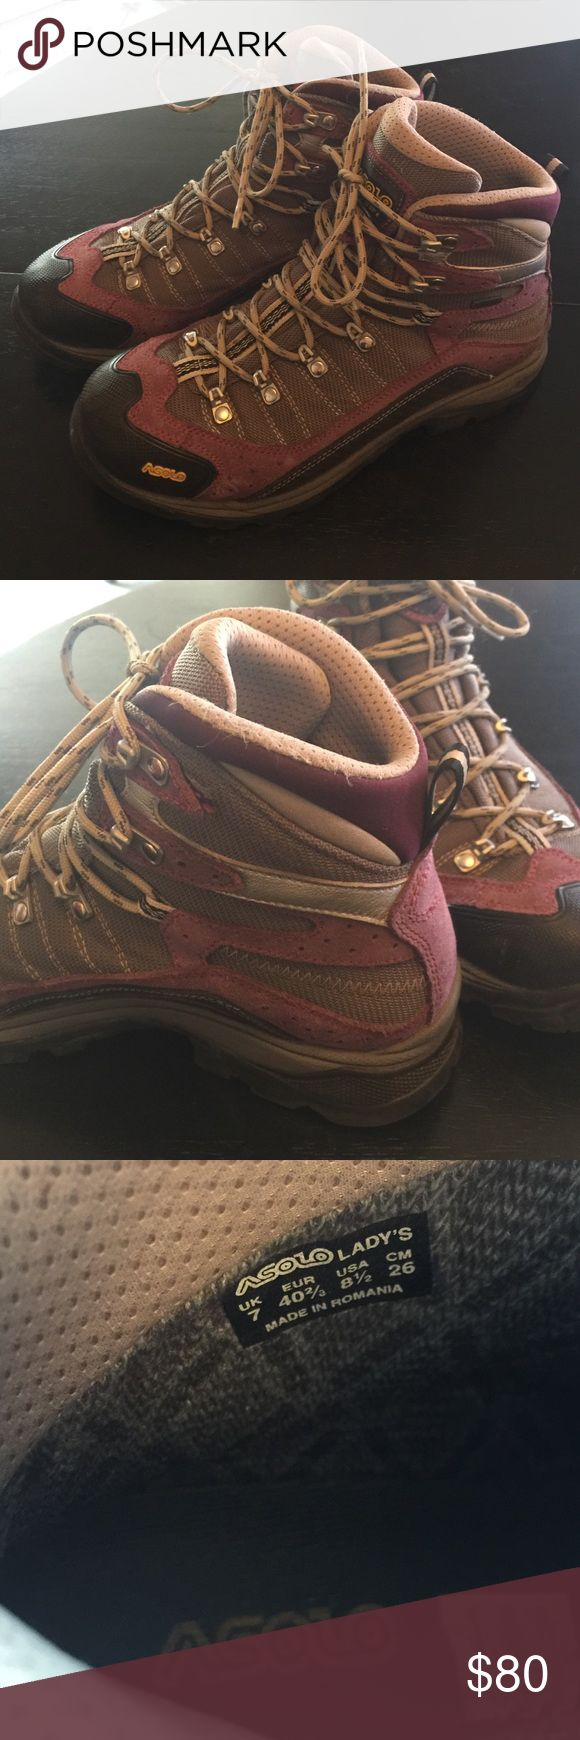 Women's Asolo hiking boots Women's Asolo hiking boots. Worn approx 5-8 times on daytime hikes, I don't think they're even broken in. They were an expensive experiment, but I decided I prefer leather. Lots of life left in these. Asolo Shoes Combat & Moto Boots